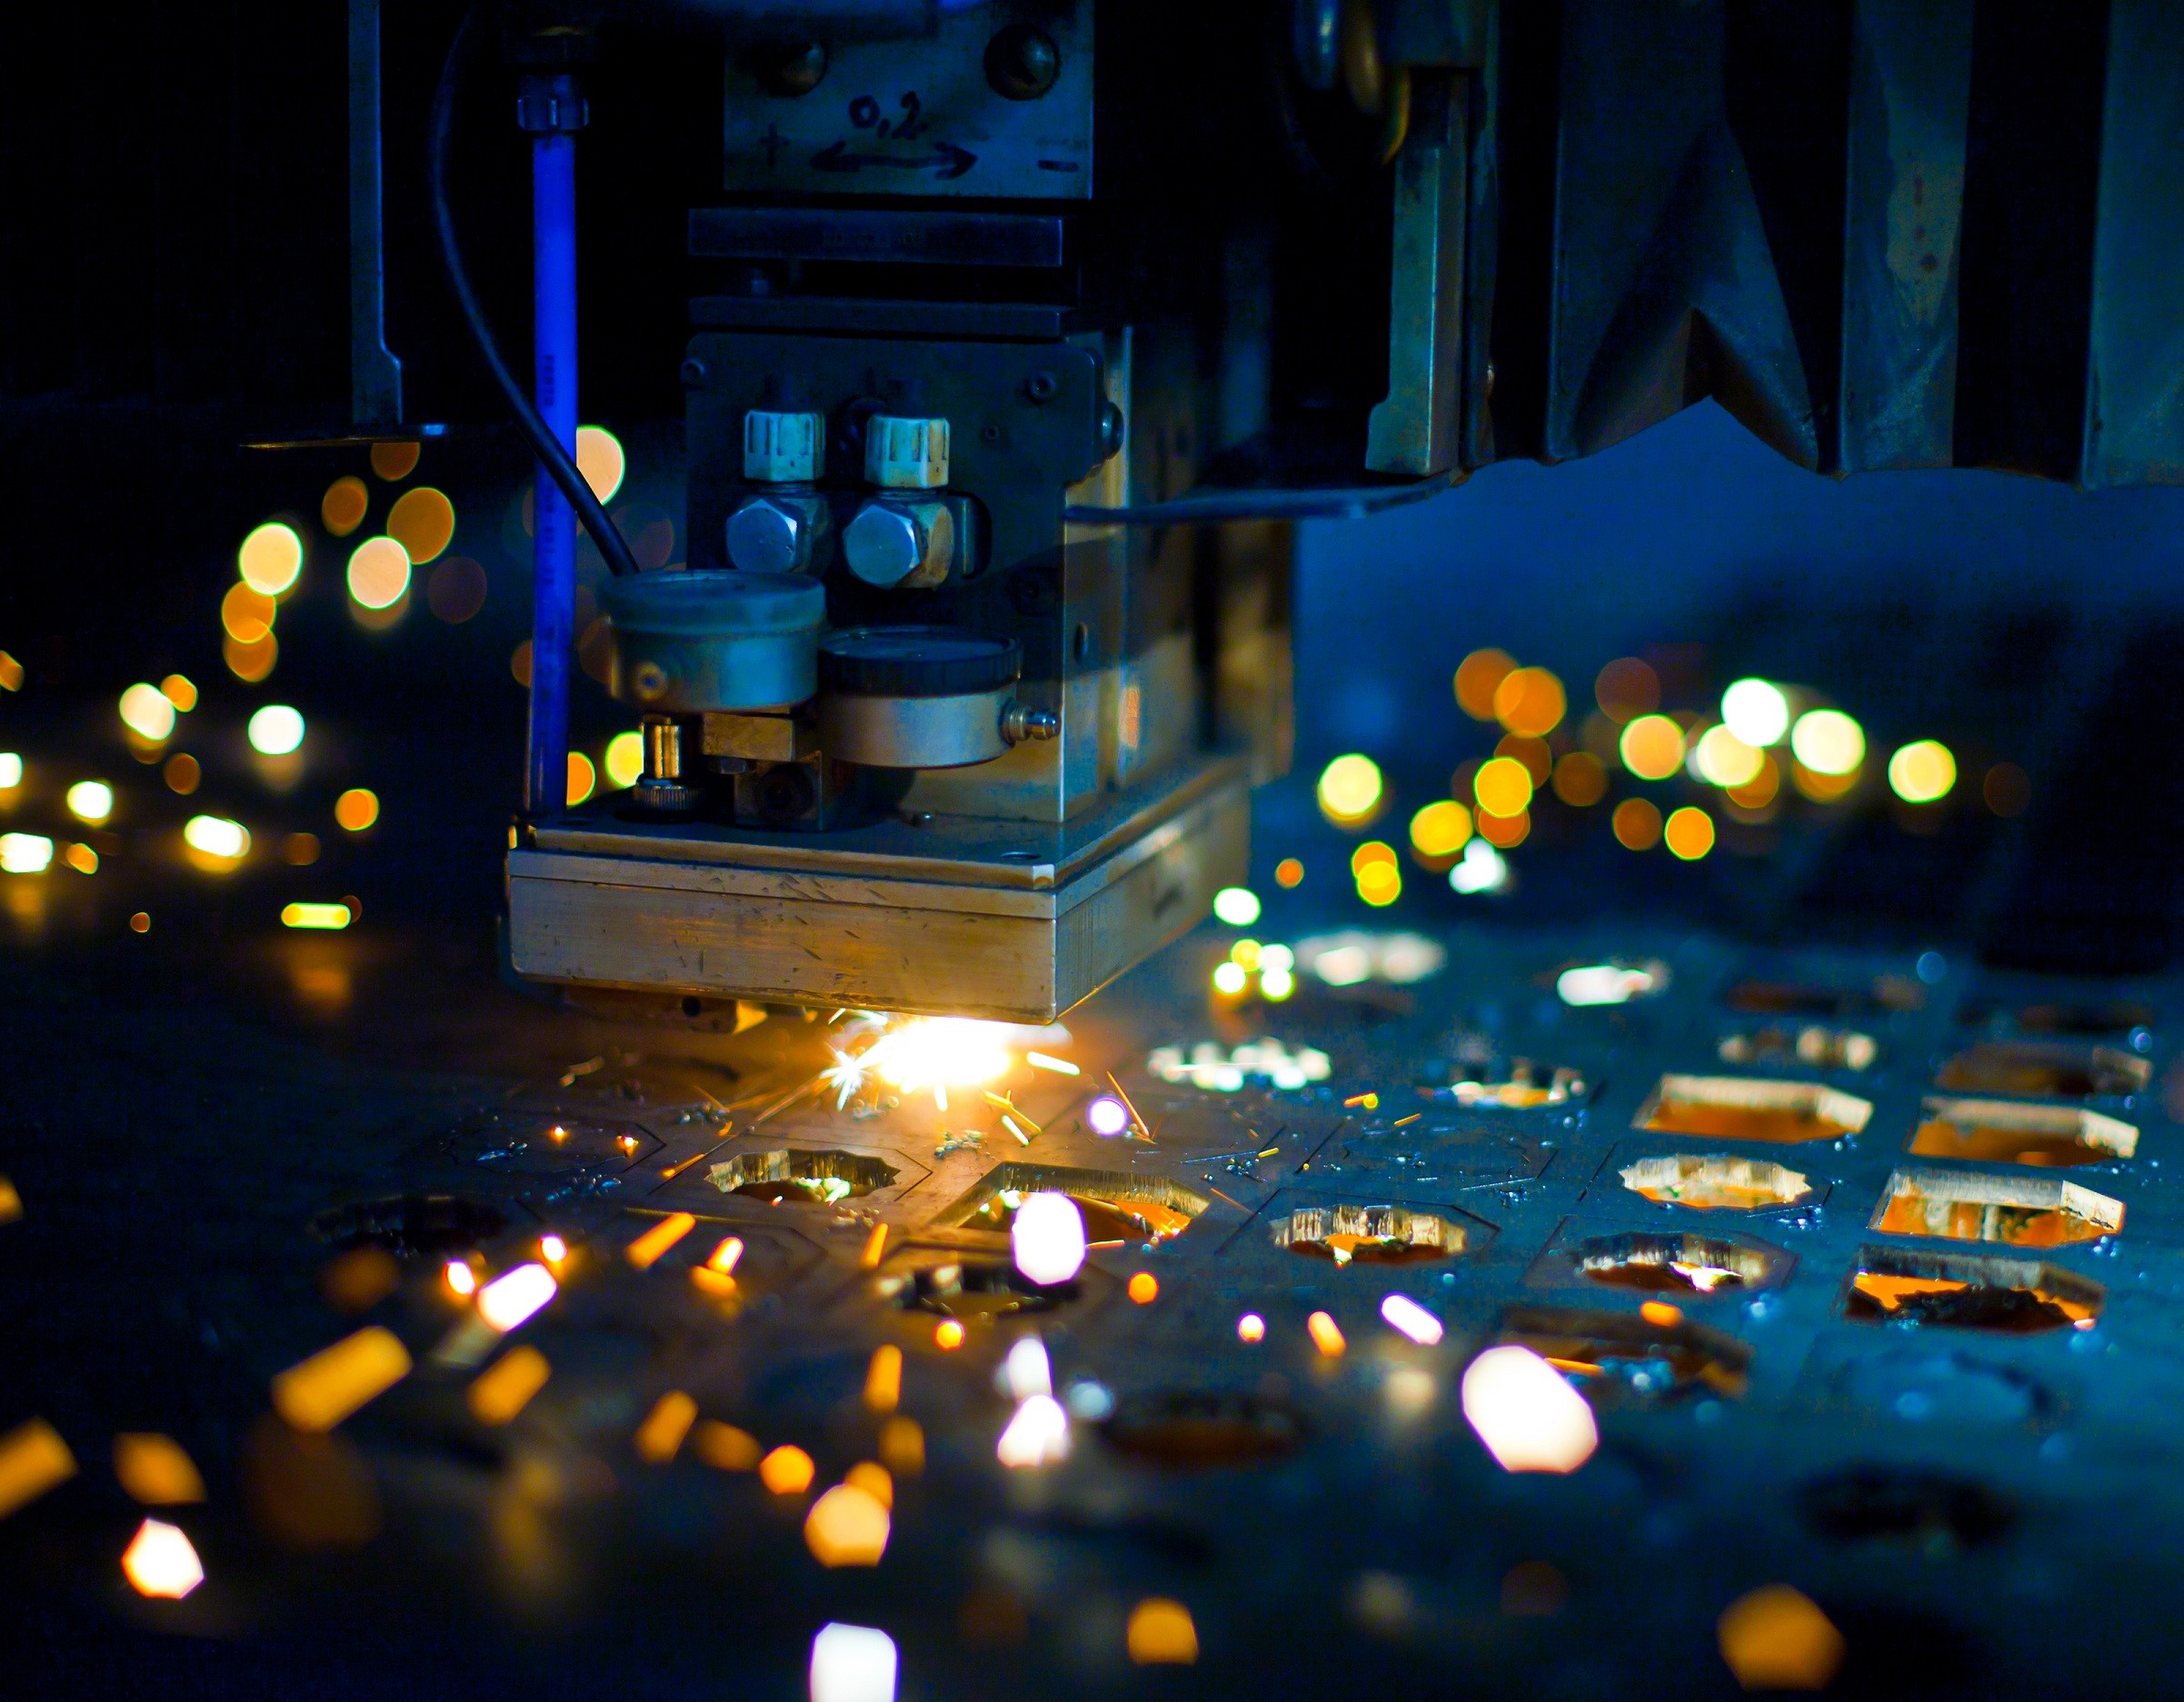 Architectural-Industrial-Metal-Finishing-Laser-Cutting-11